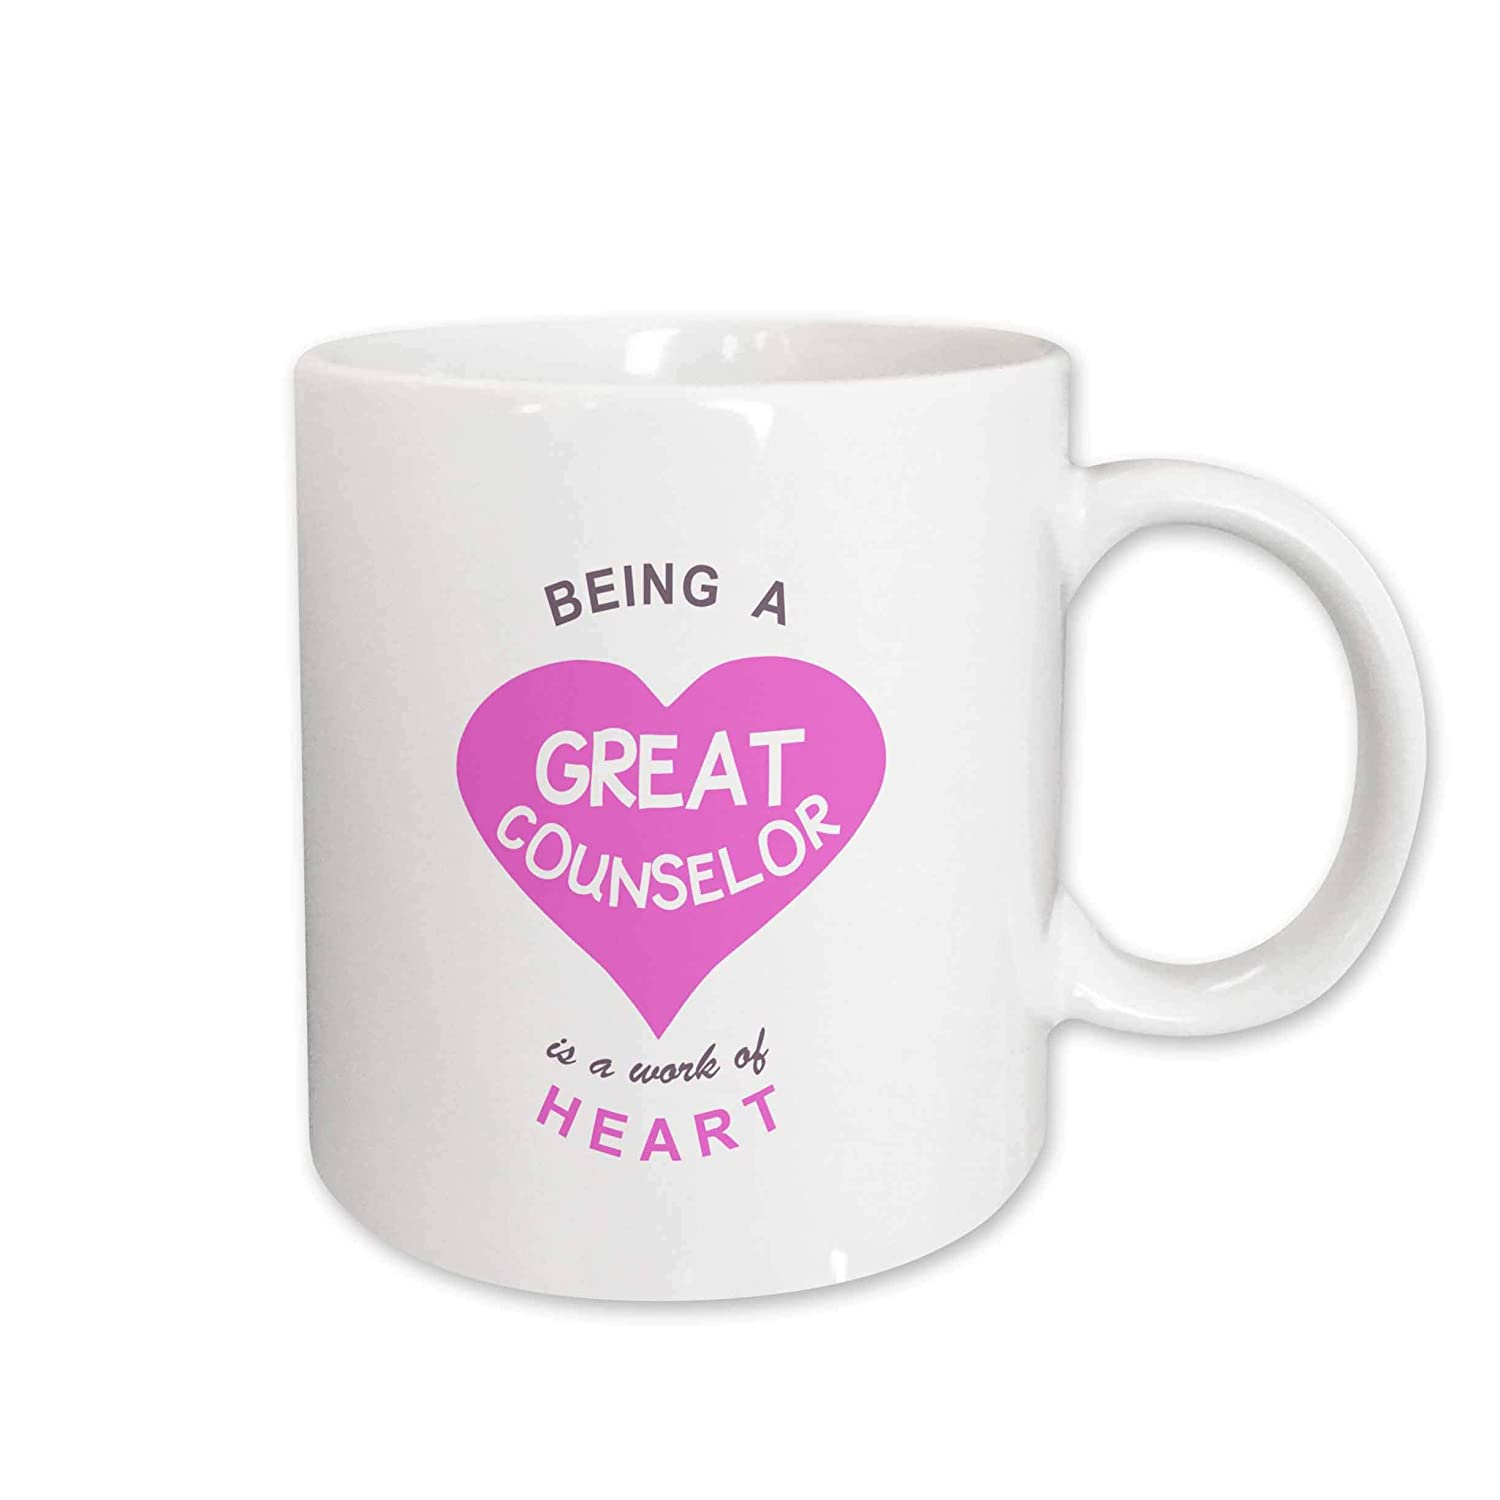 Amazon 3drose Mug1838621 Being A Great Counselor Is A Work Of